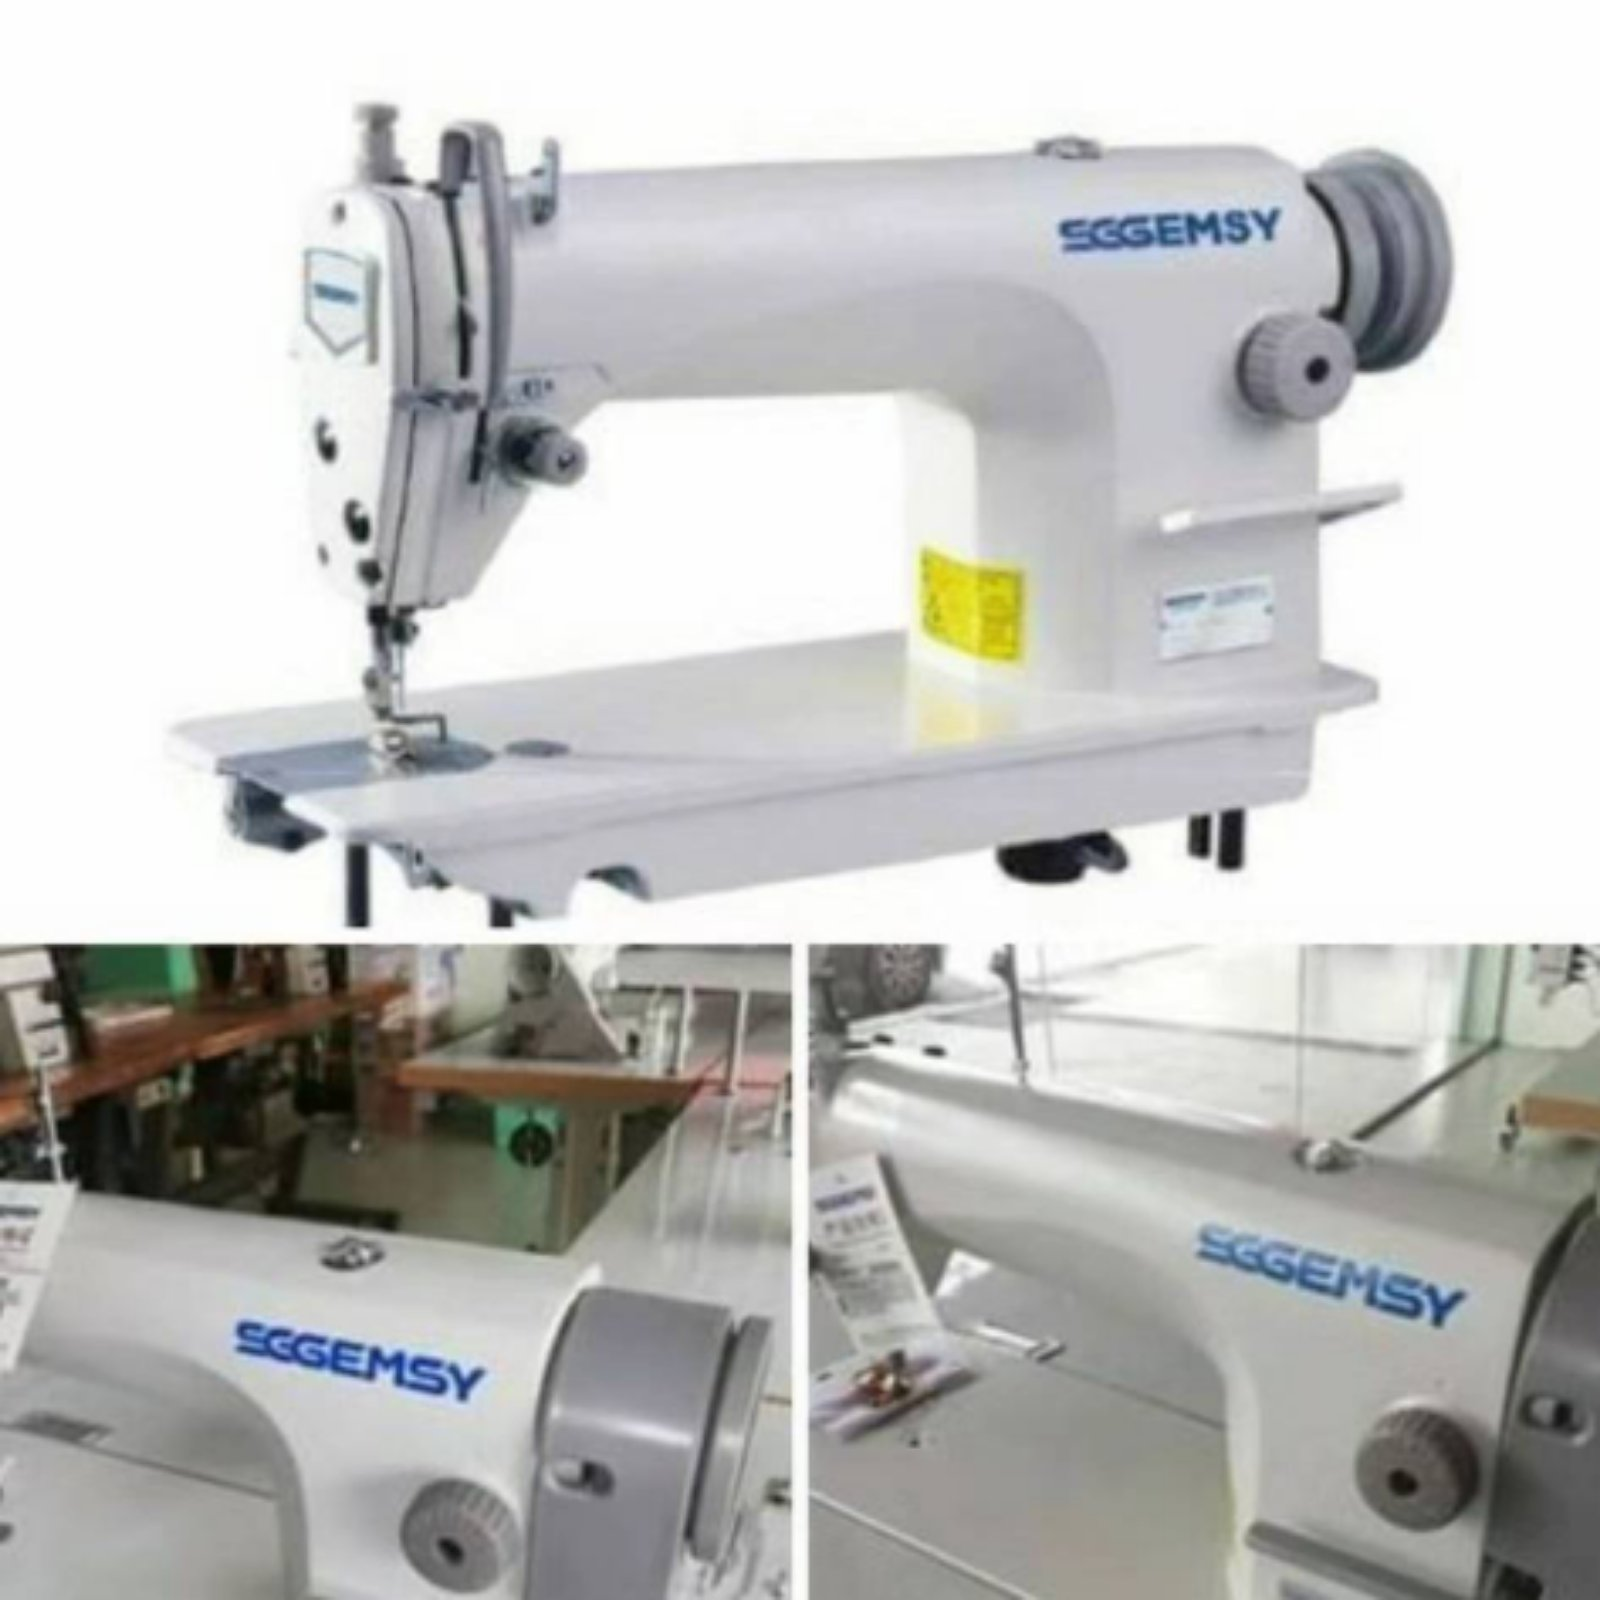 SGGemsy Hi Speed Sewing Machine